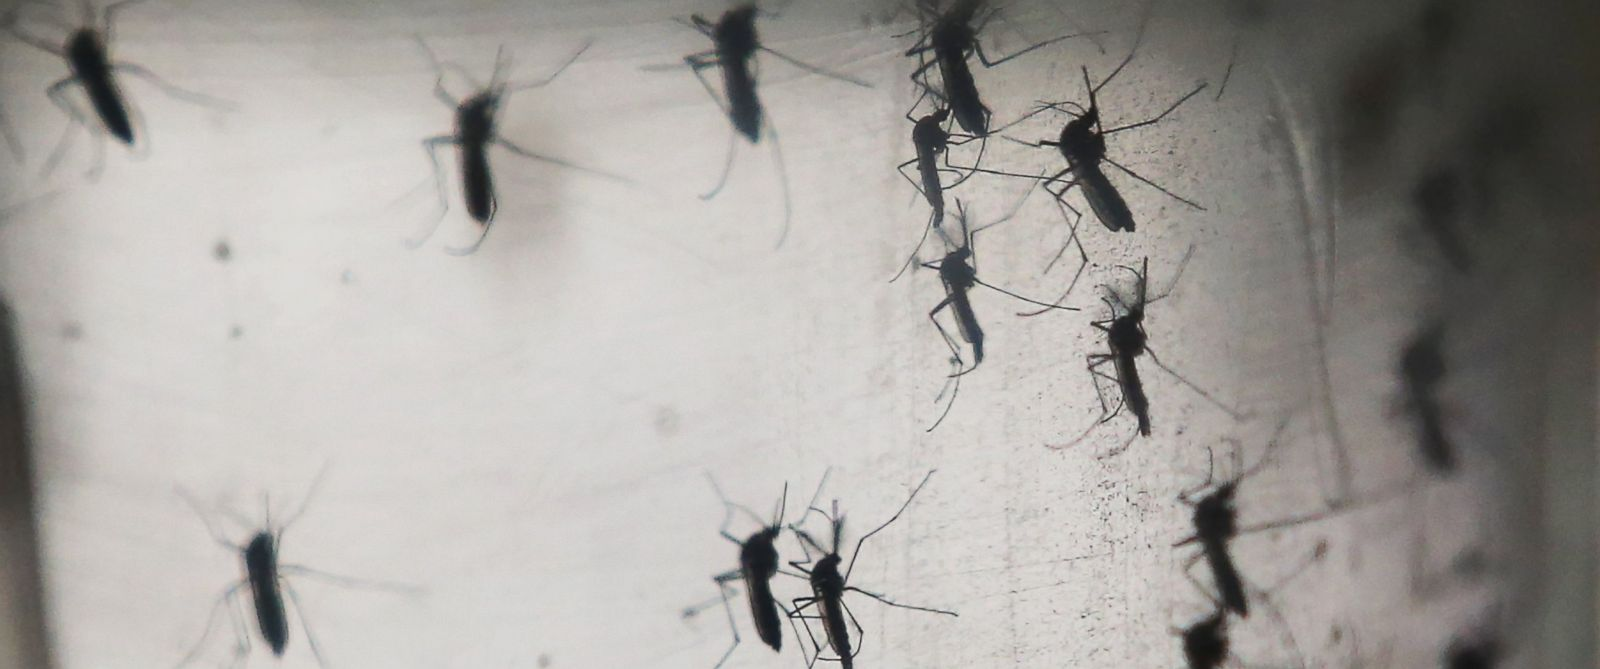 PHOTO: Aedes aegypti mosquitoes are seen in a lab at the Fiocruz institute on Jan. 26, 2016 in Recife, Brazil.